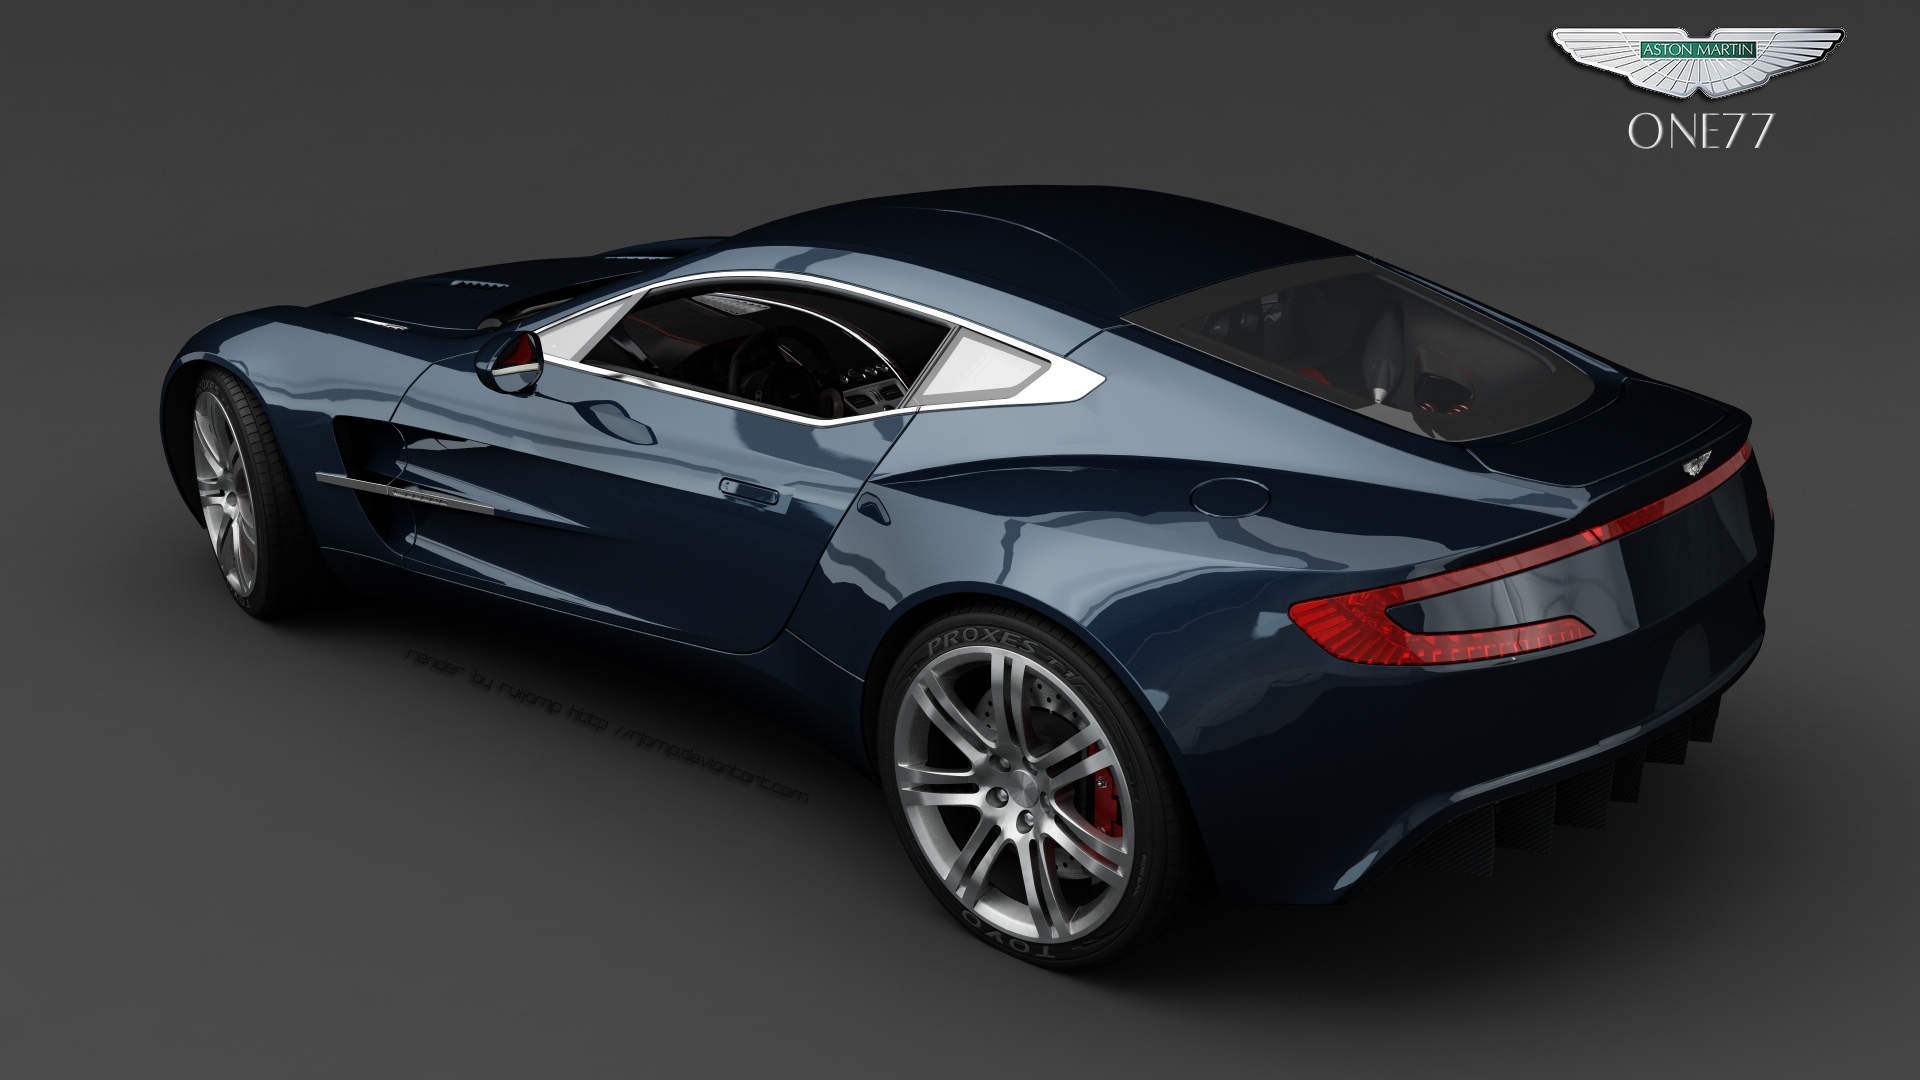 I love the one-77 Aston Martin - looks like it can take on anybody and everybody.